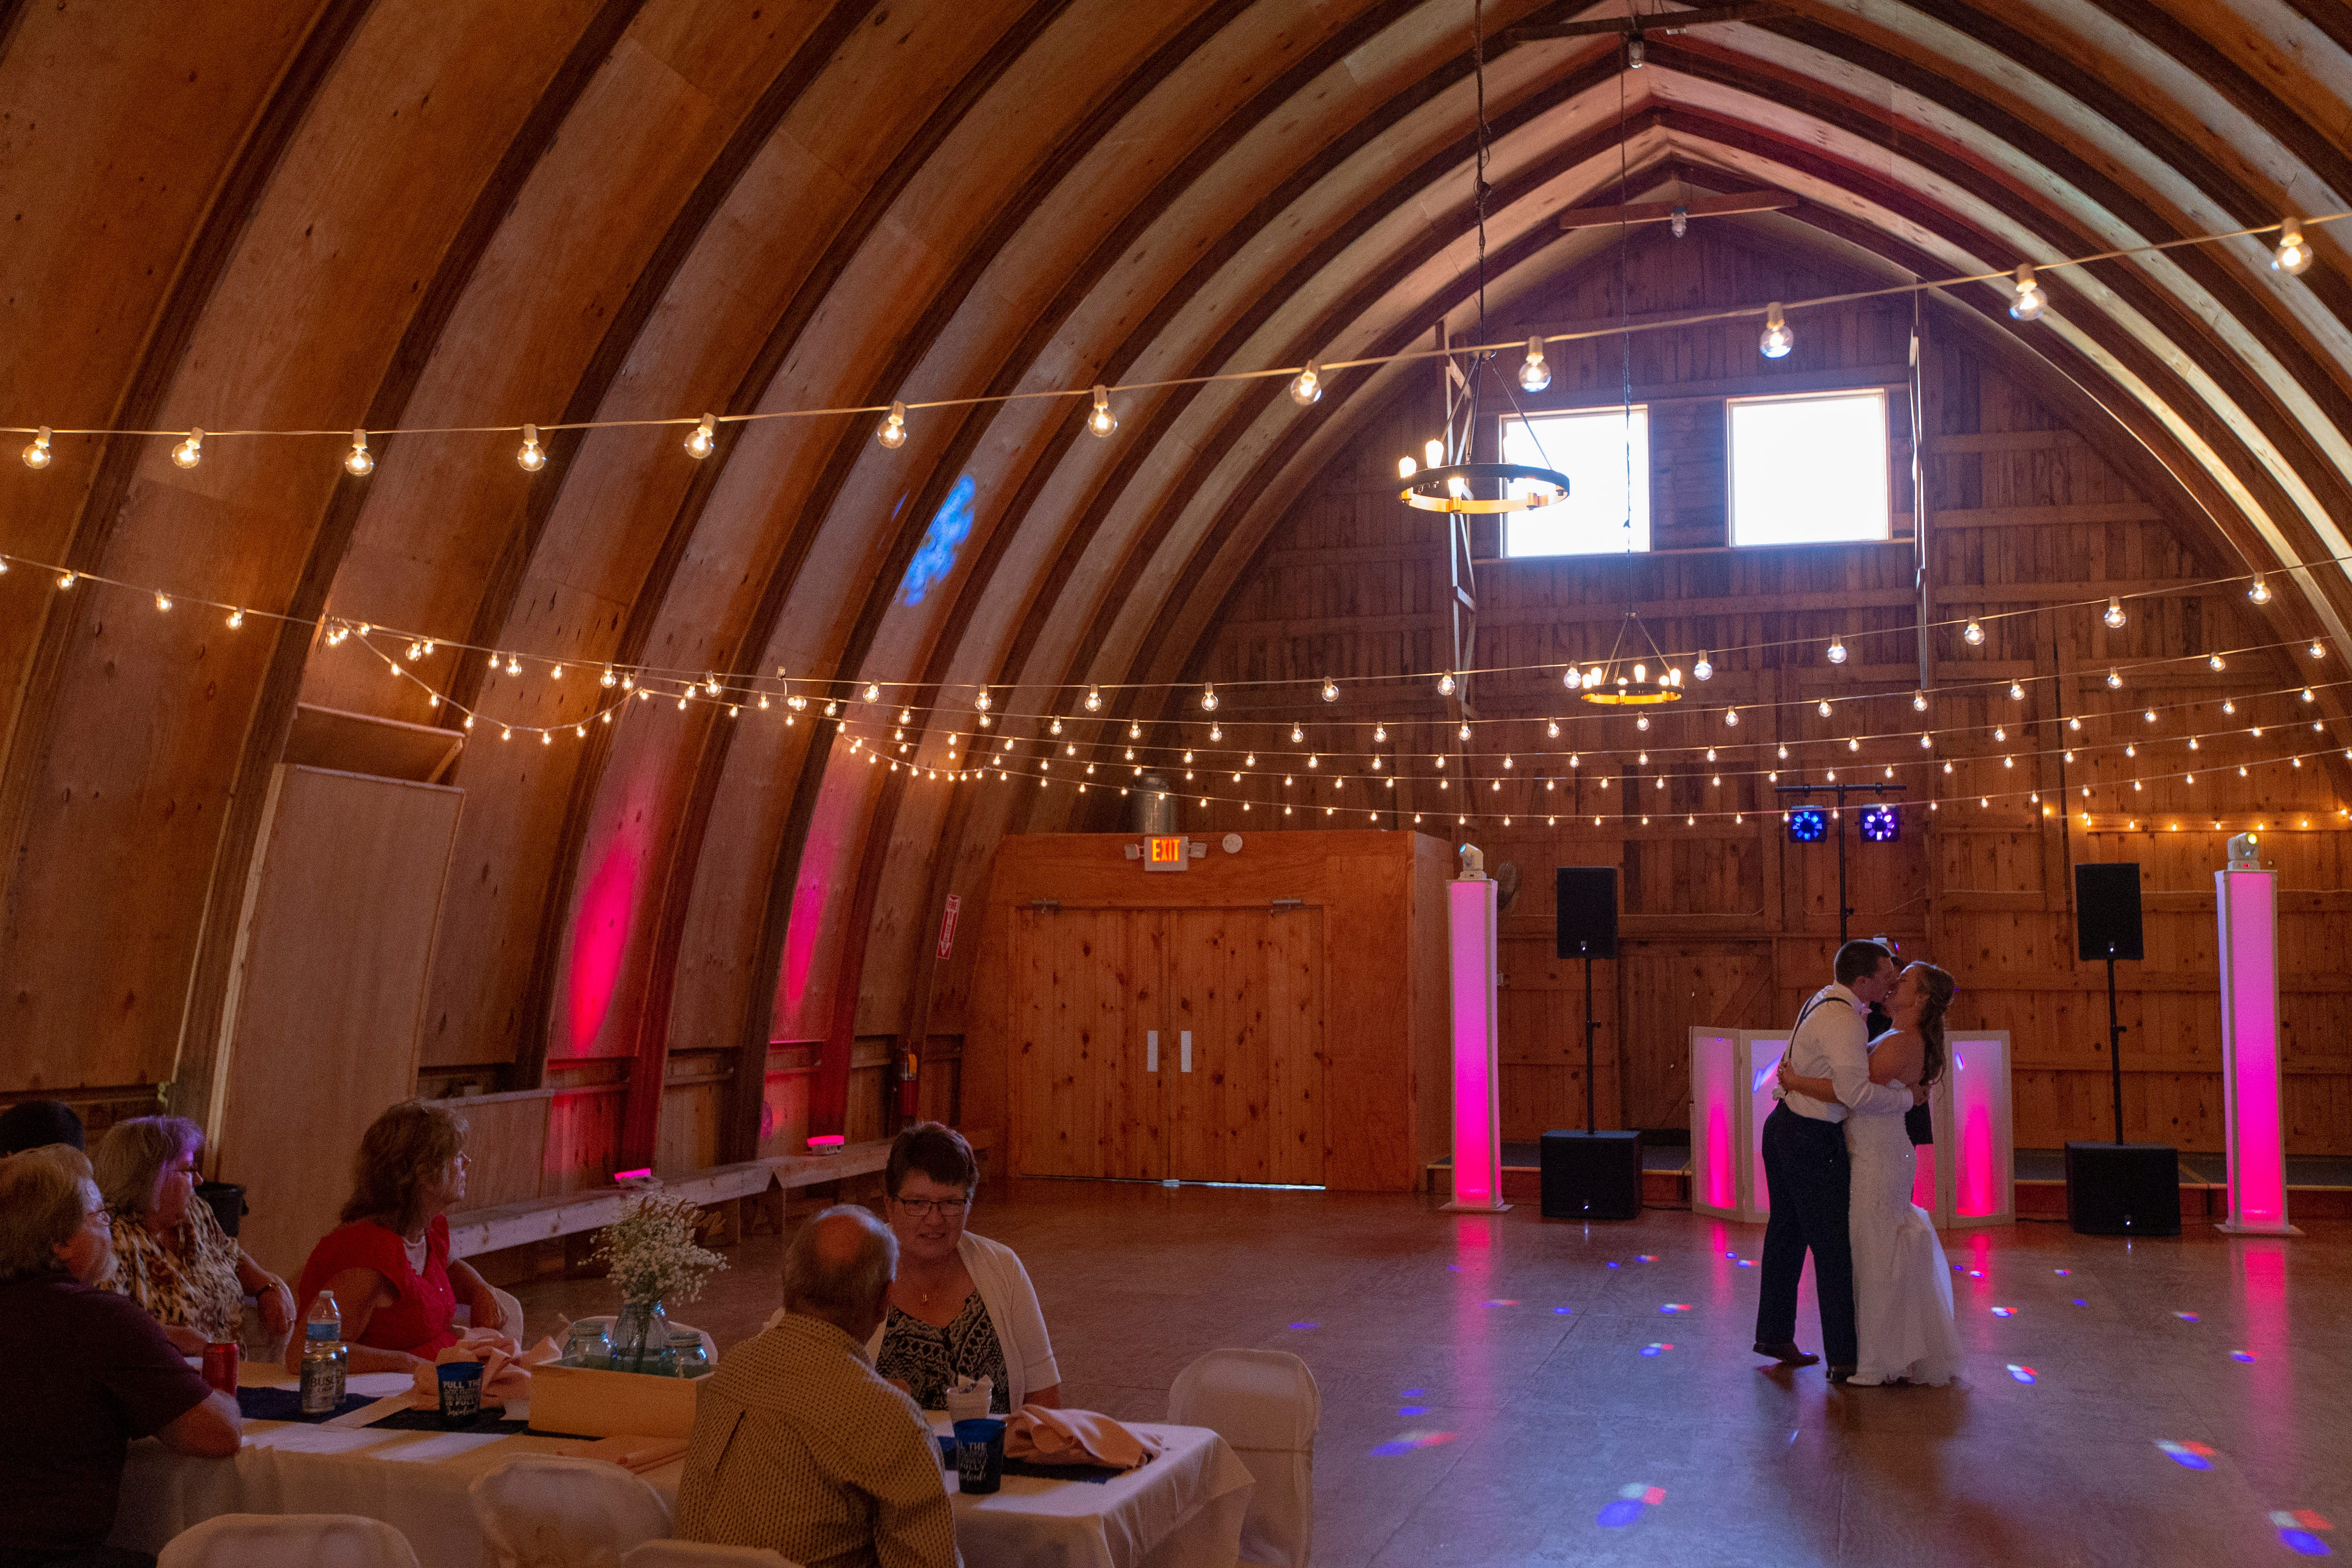 Wisconsin S Old Dairy Barns Are Becoming Its Trendiest Wedding Venues